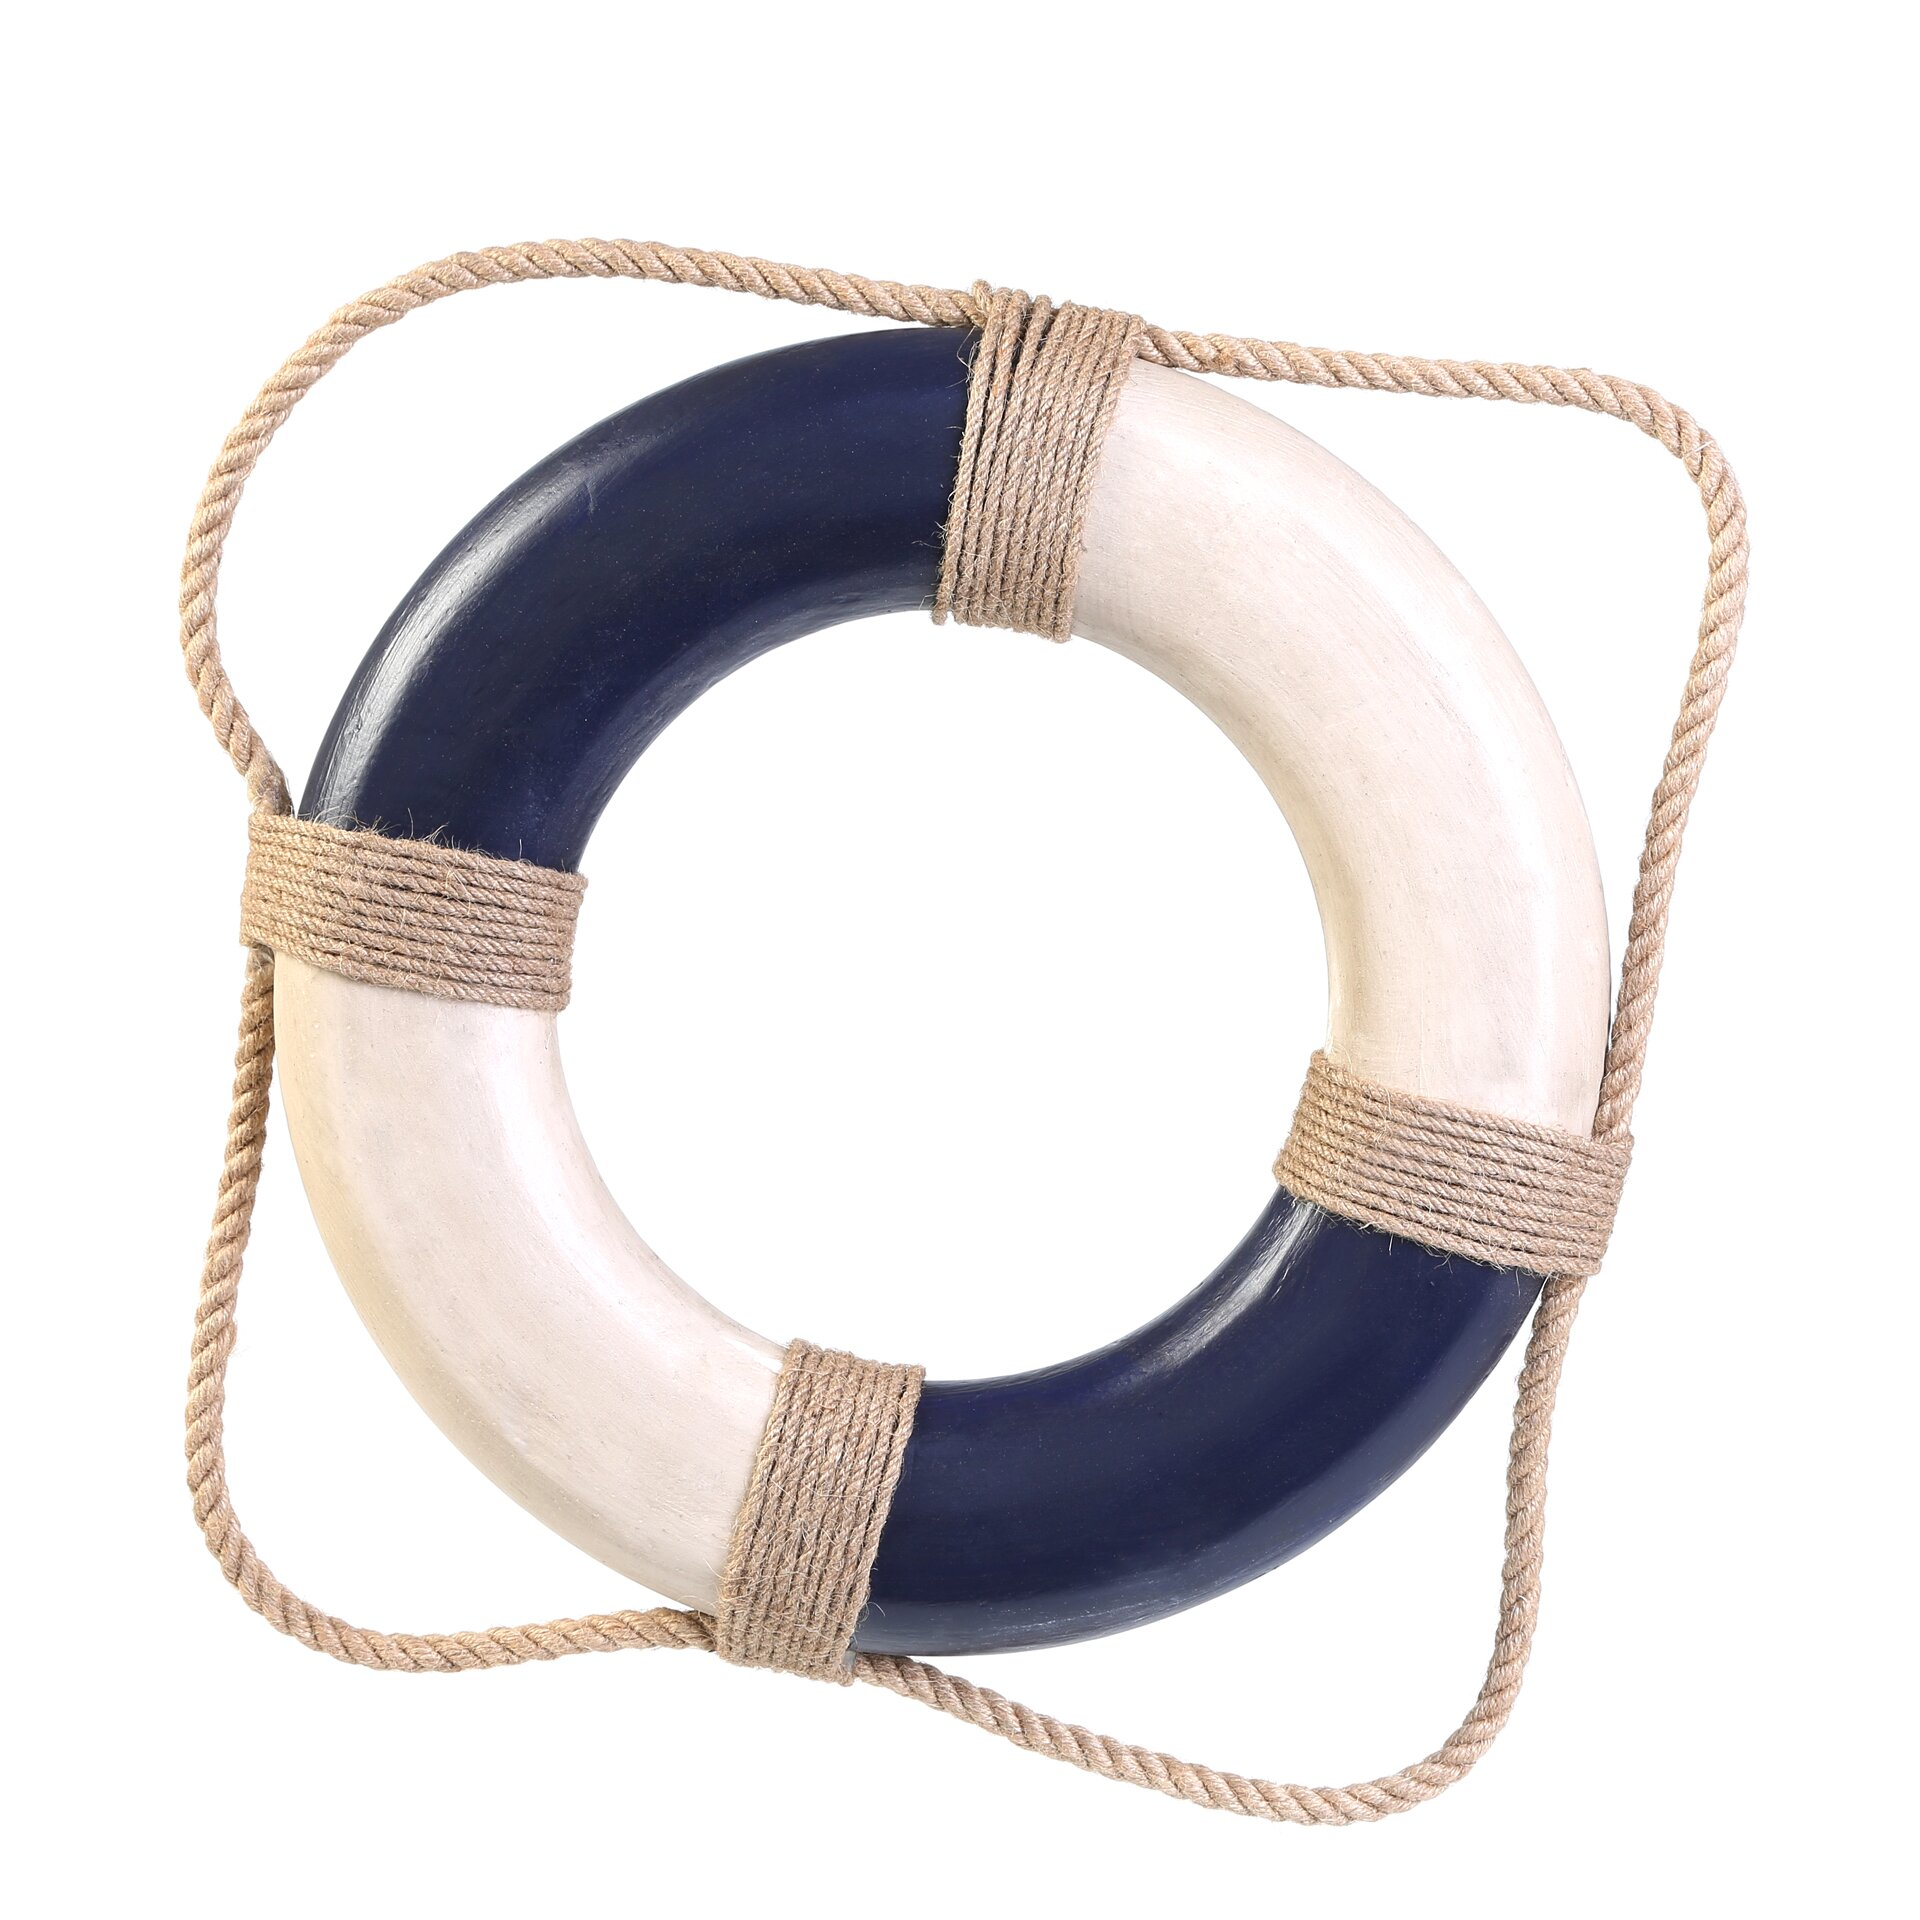 Handcrafted Nautical Decor Antique Life Ring Wall Décor ...  Handcrafted Nau...